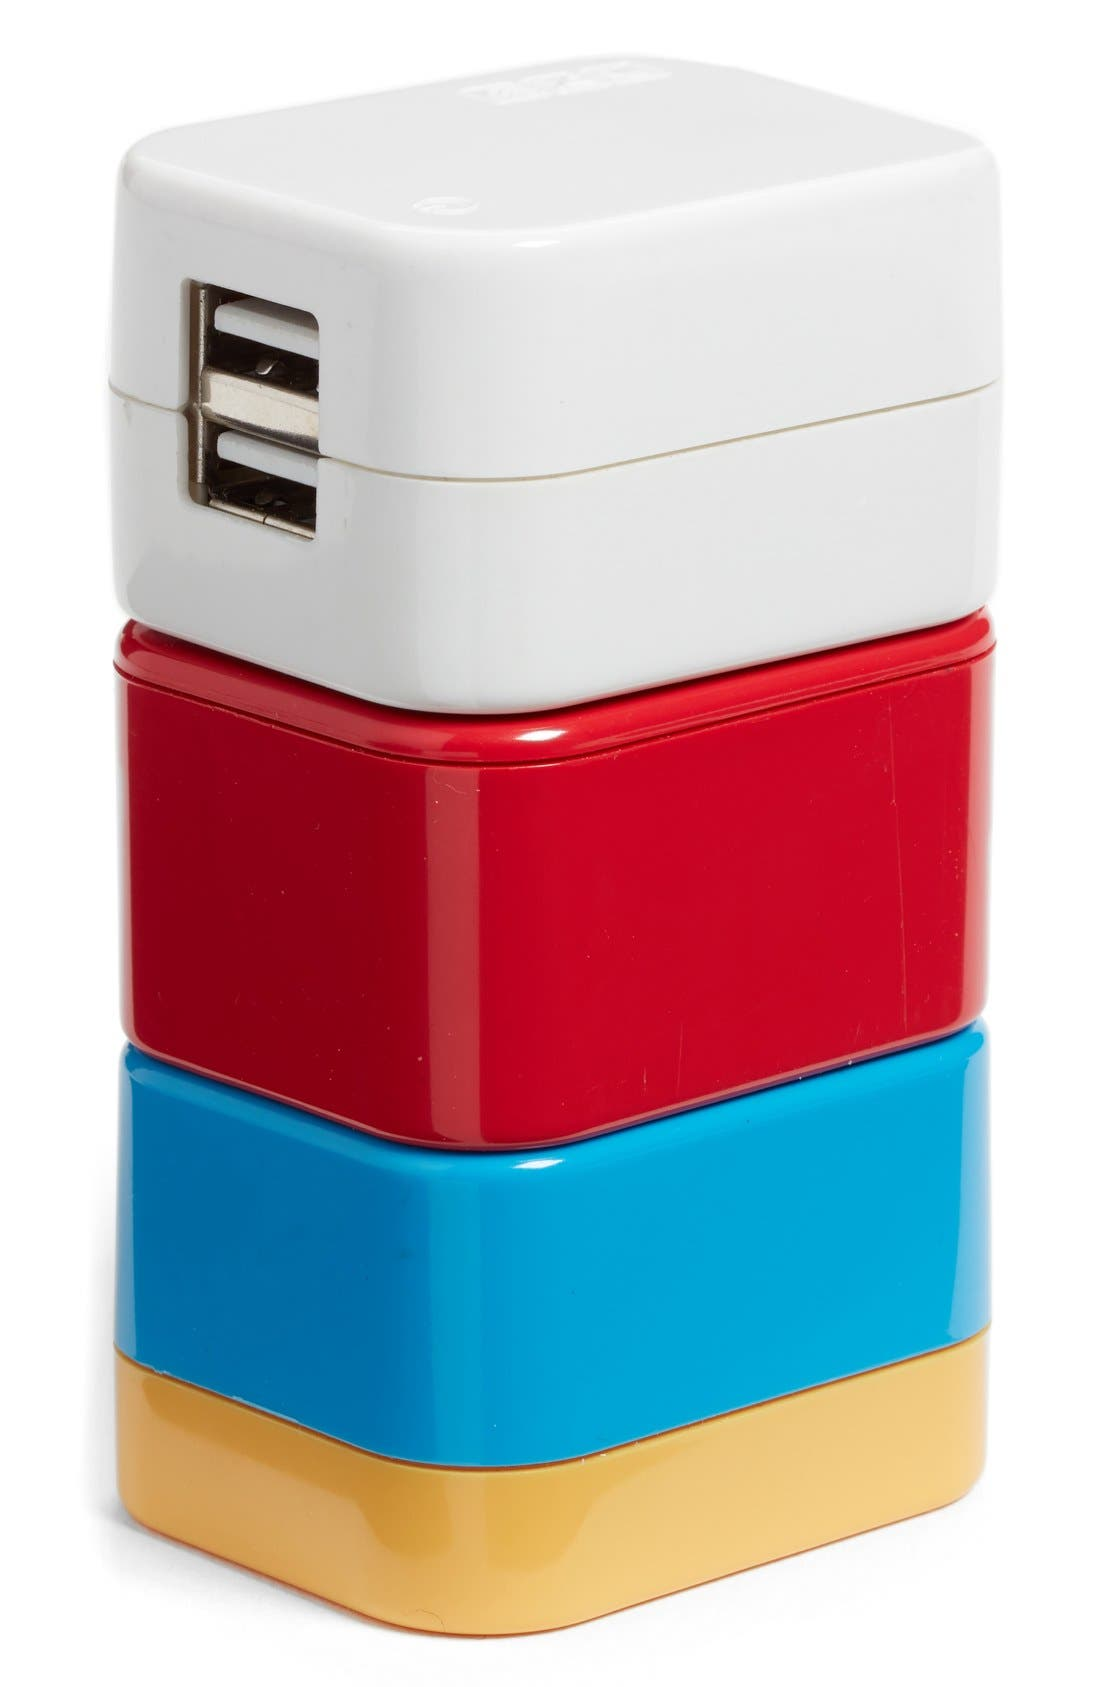 5-in-1 Universal Travel Adapter,                         Main,                         color,